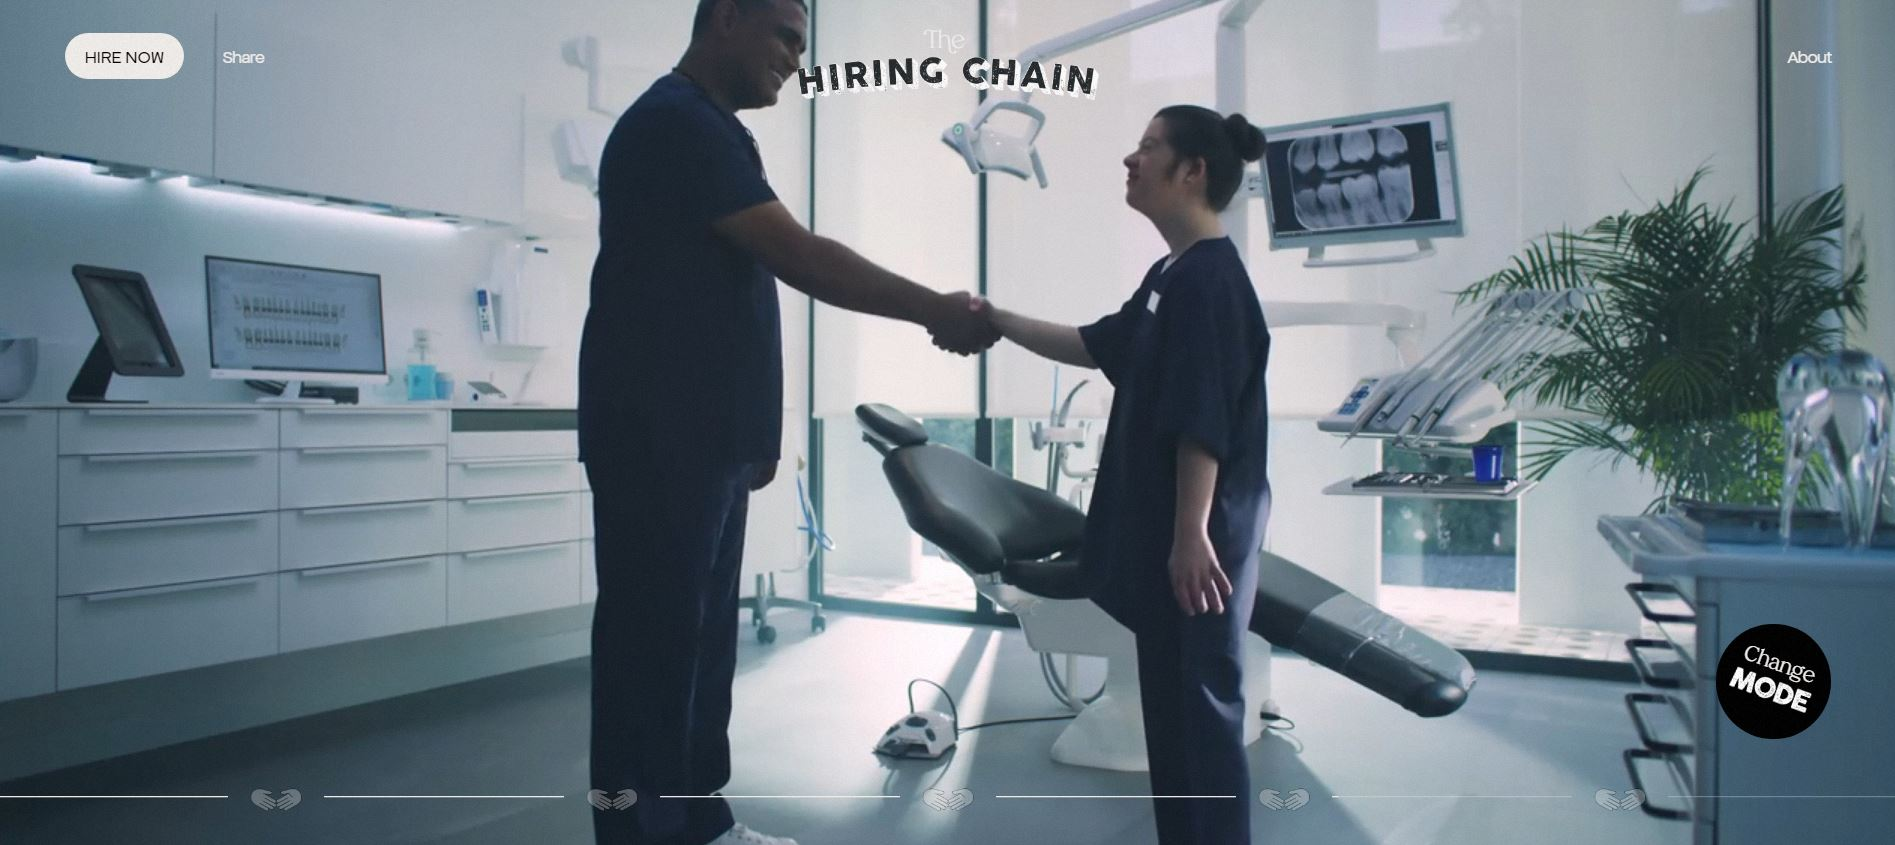 The Hiring Chain